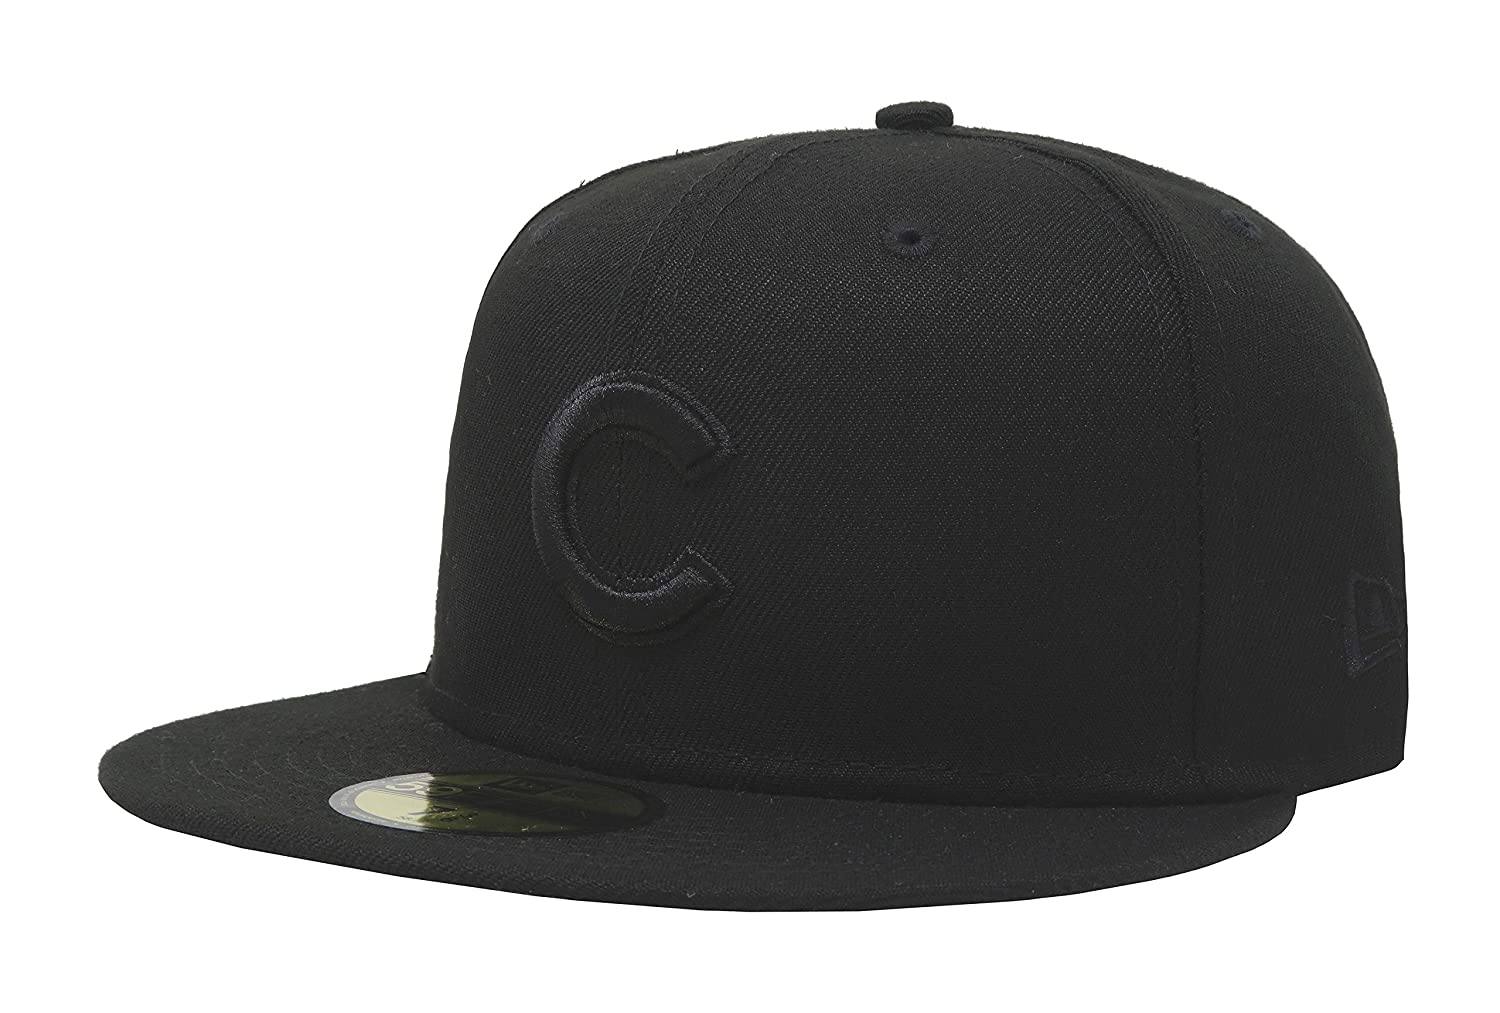 ec81d5440bb New Era 59Fifty Hat MLB Basic Chicago Cubs Black Black Fitted Baseball Cap  at Amazon Men s Clothing store